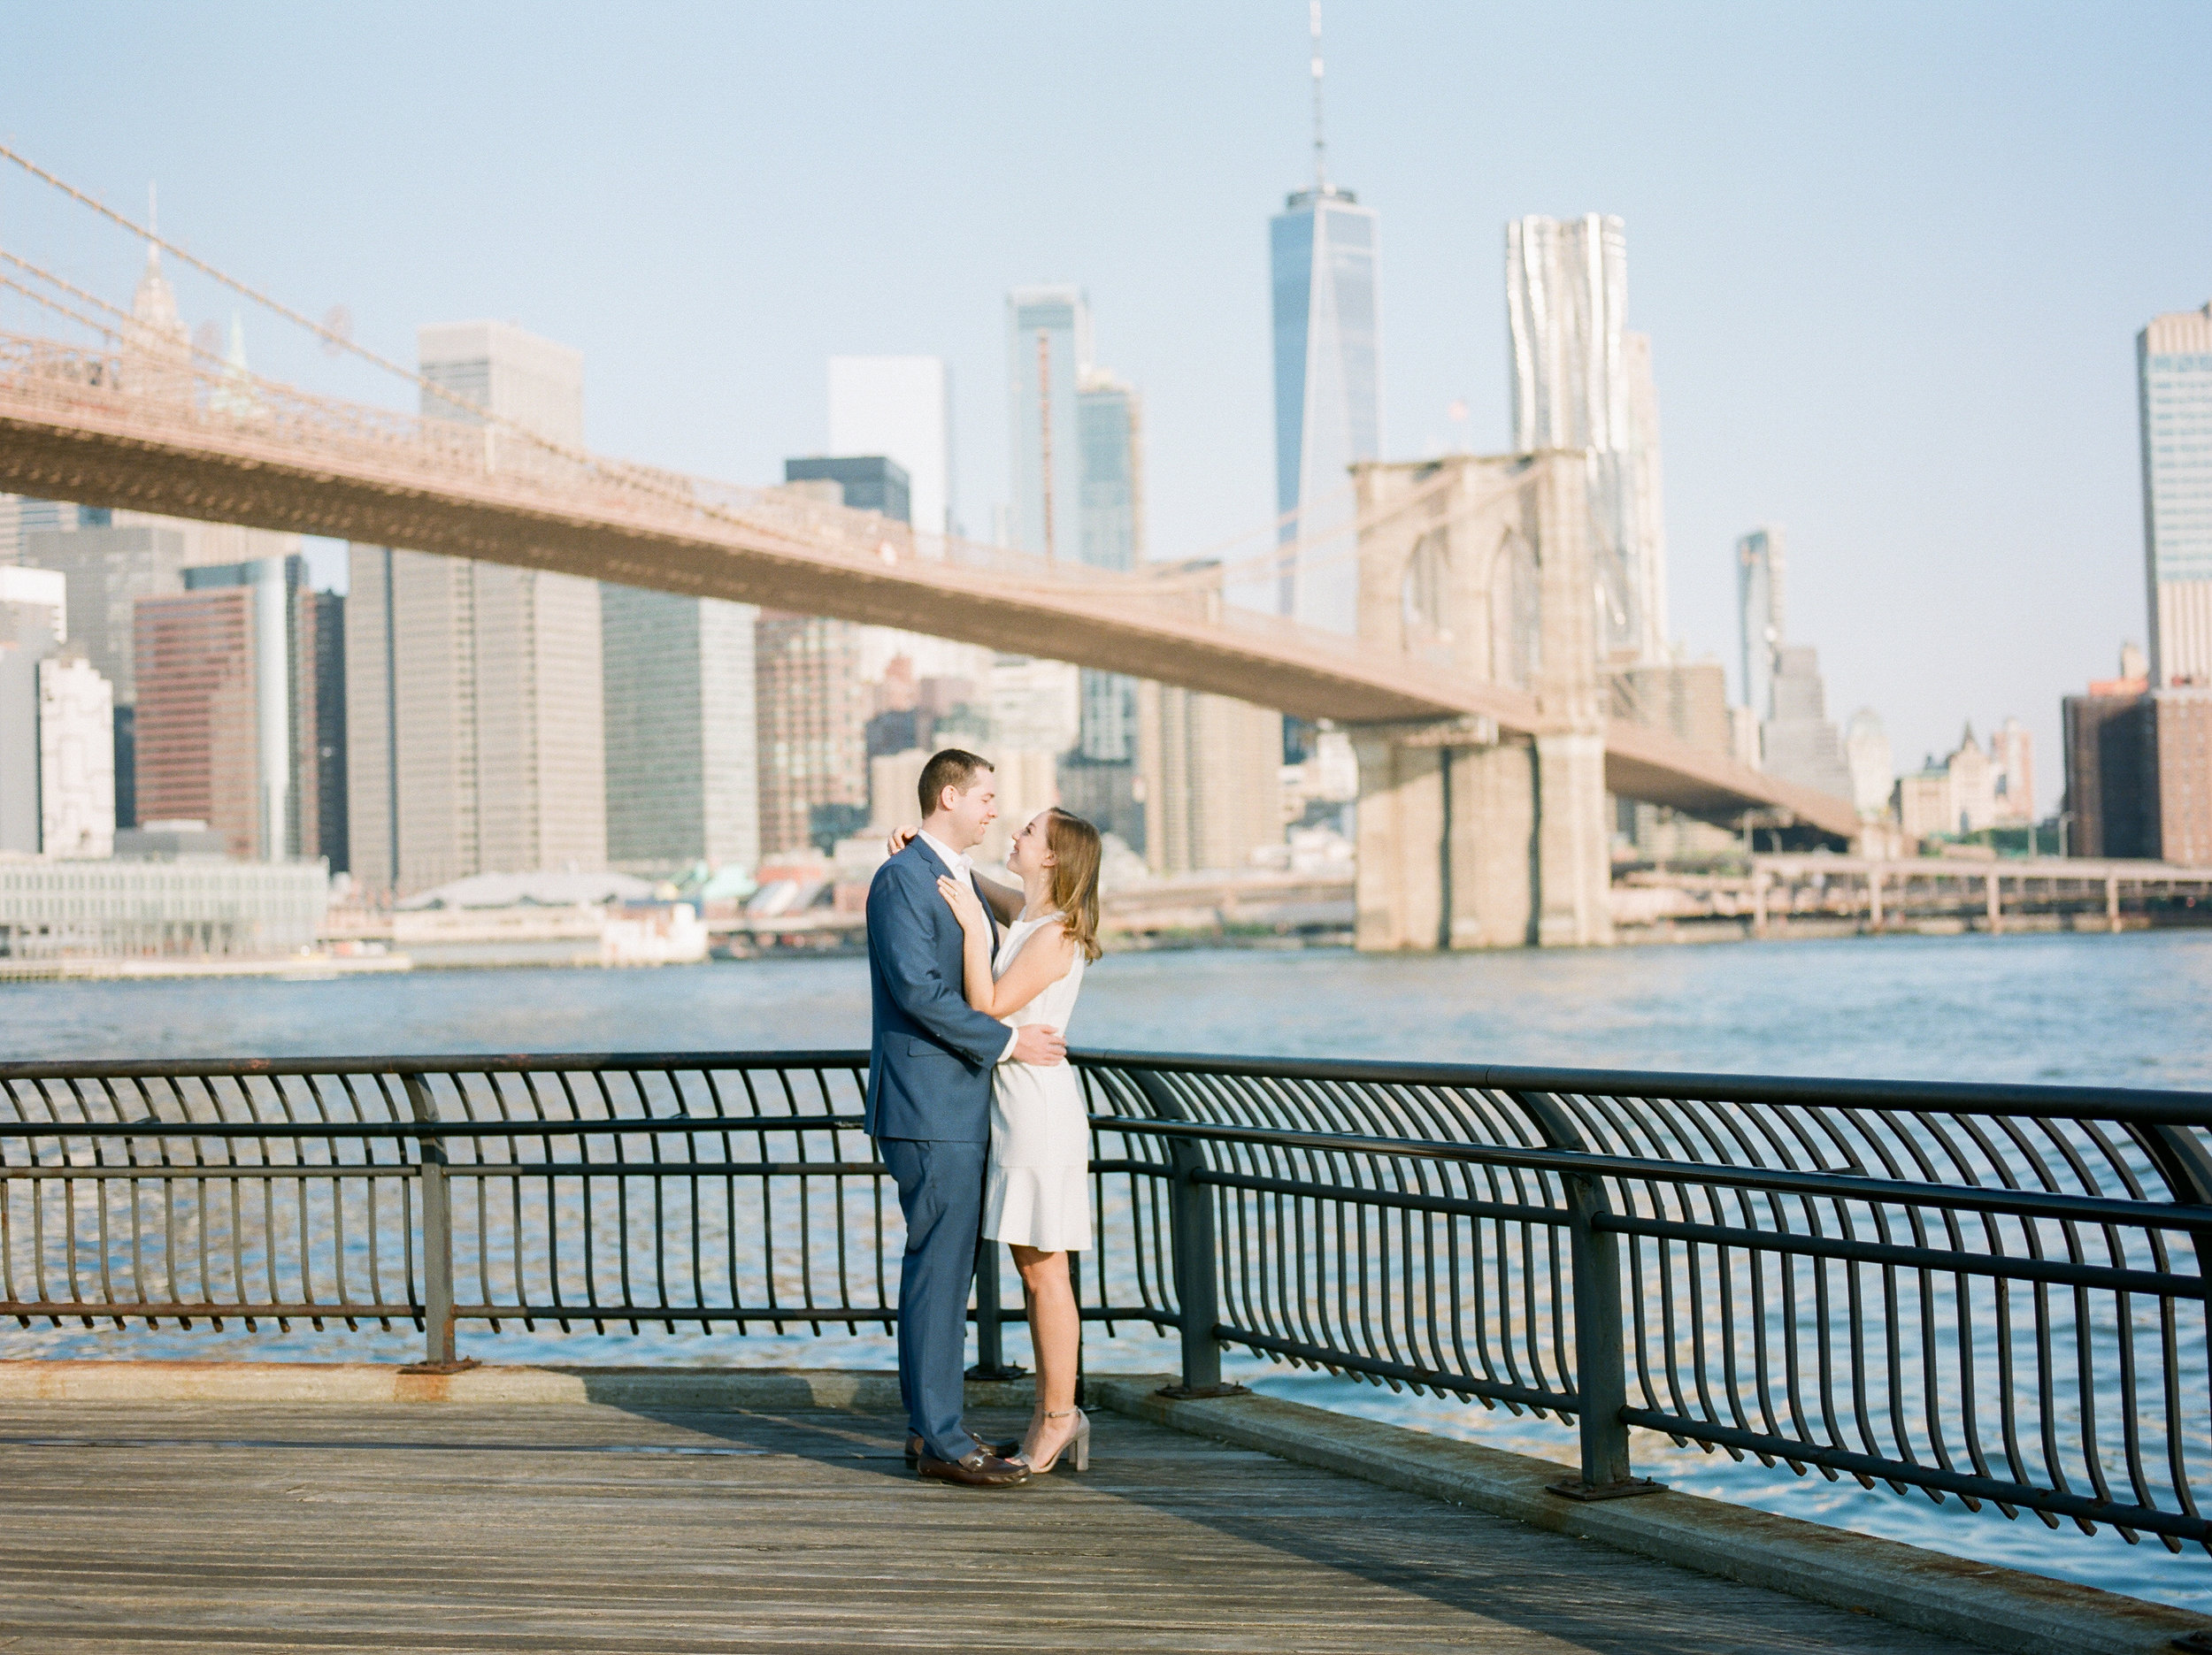 Dumbo-Engagement-Session-Asher-Gardner9.jpg